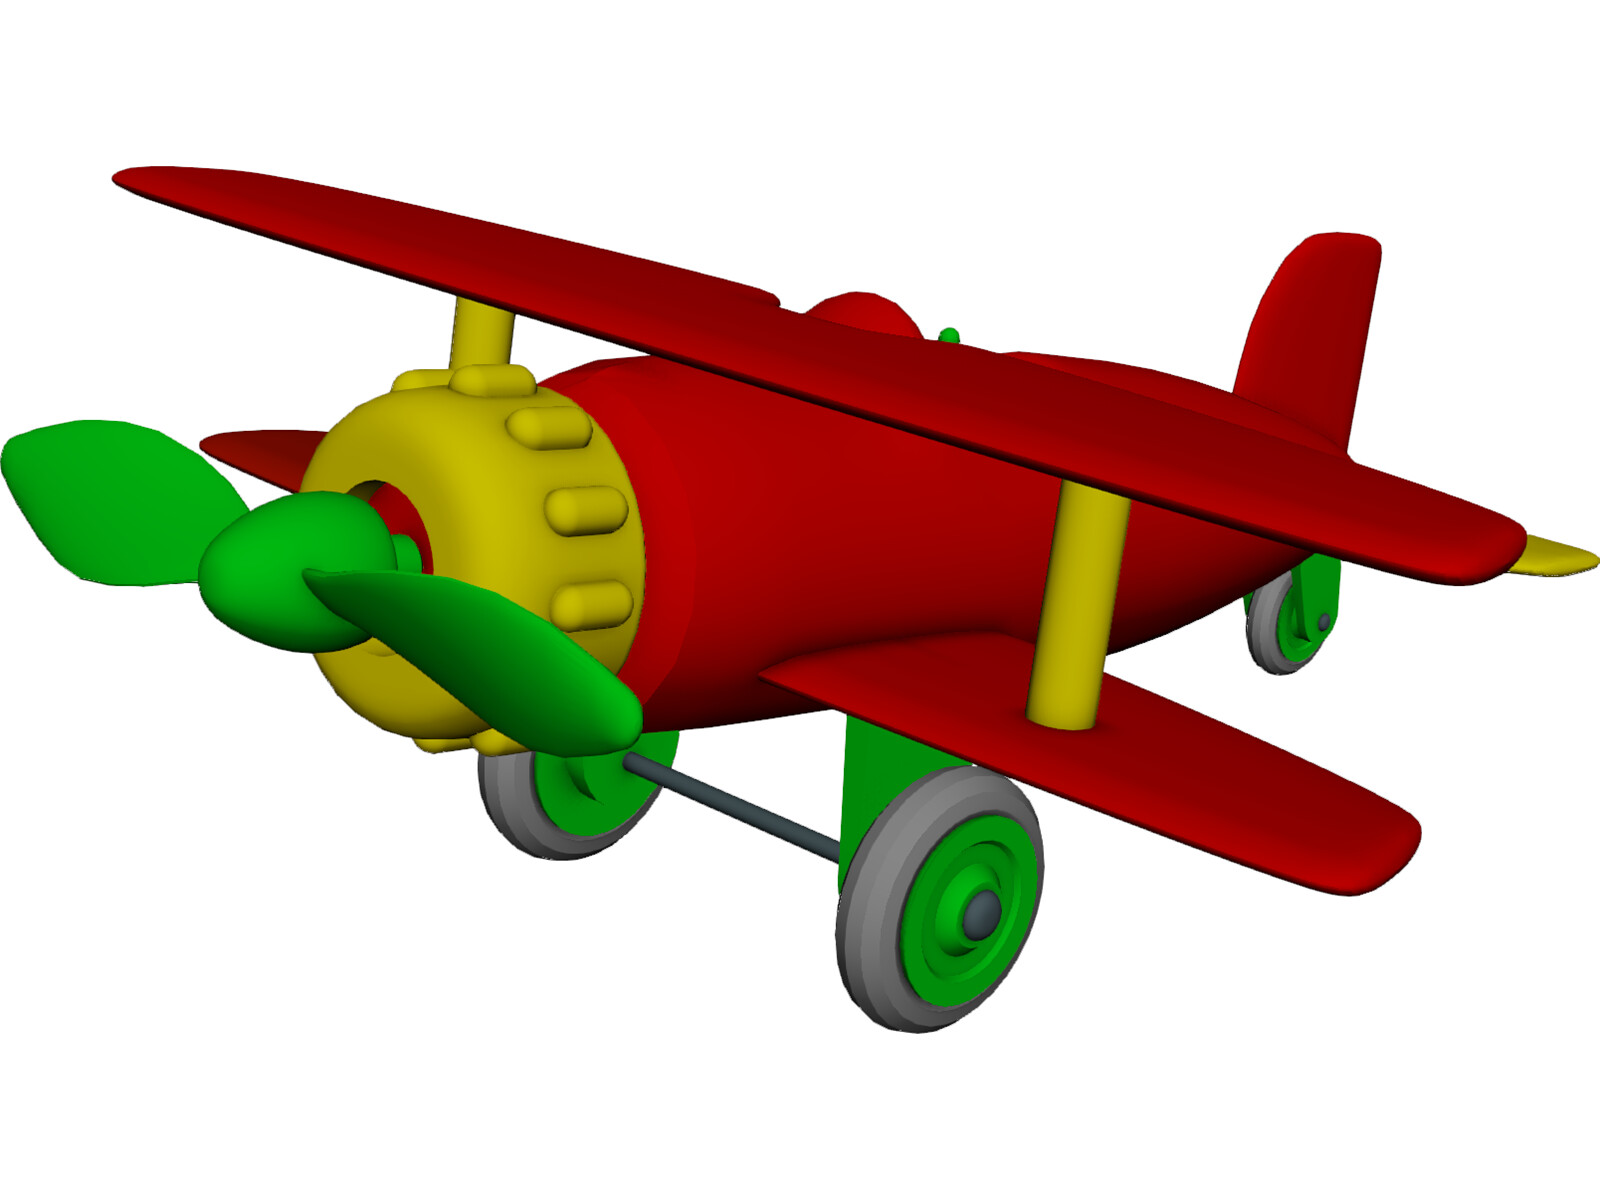 Toy Model Gallery : Airplane toy d model cad browser